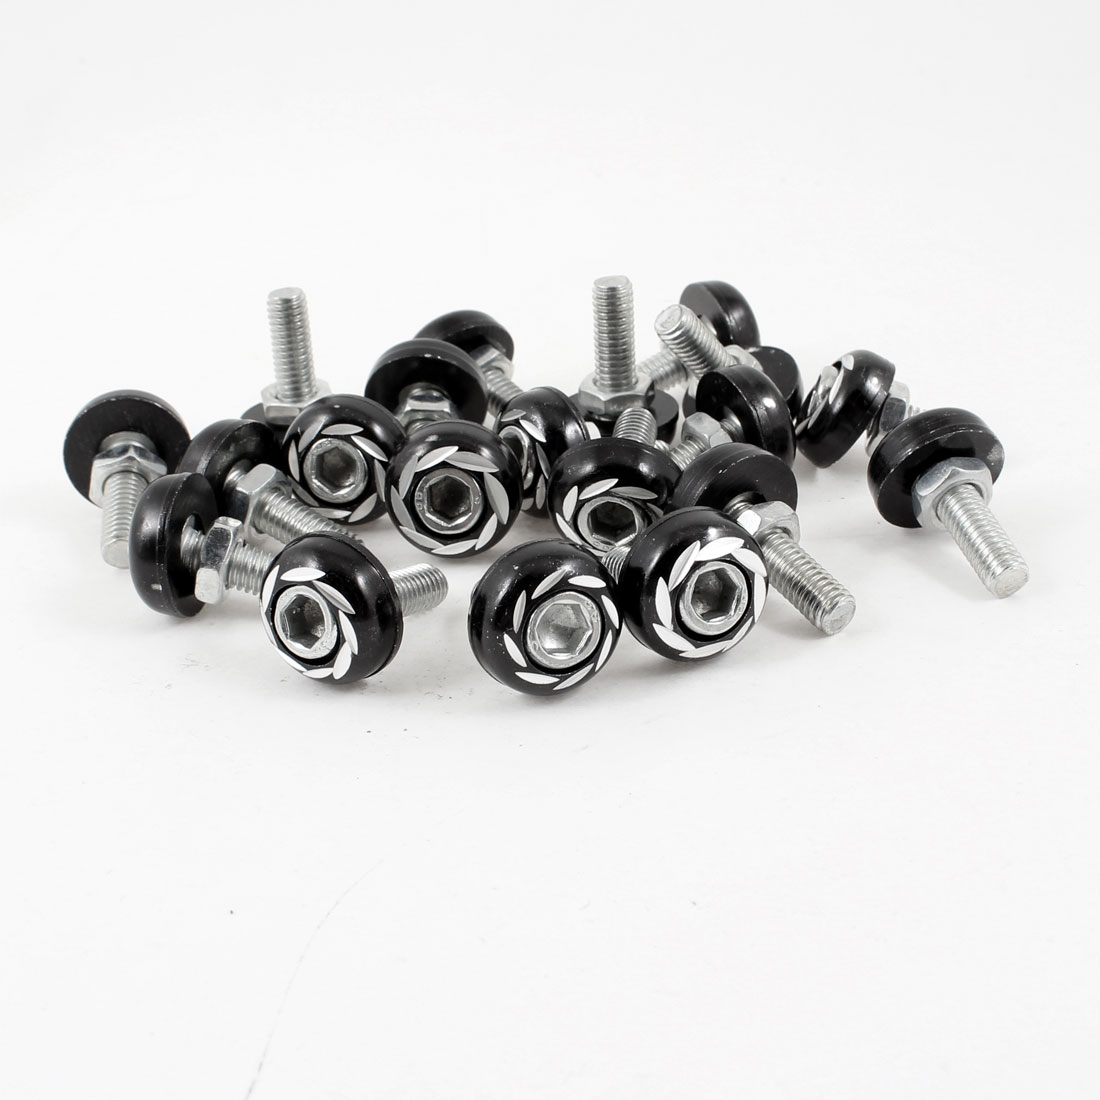 20PCS Car Automobile License Plate Bolt Screw Decoration Silver Tone Black